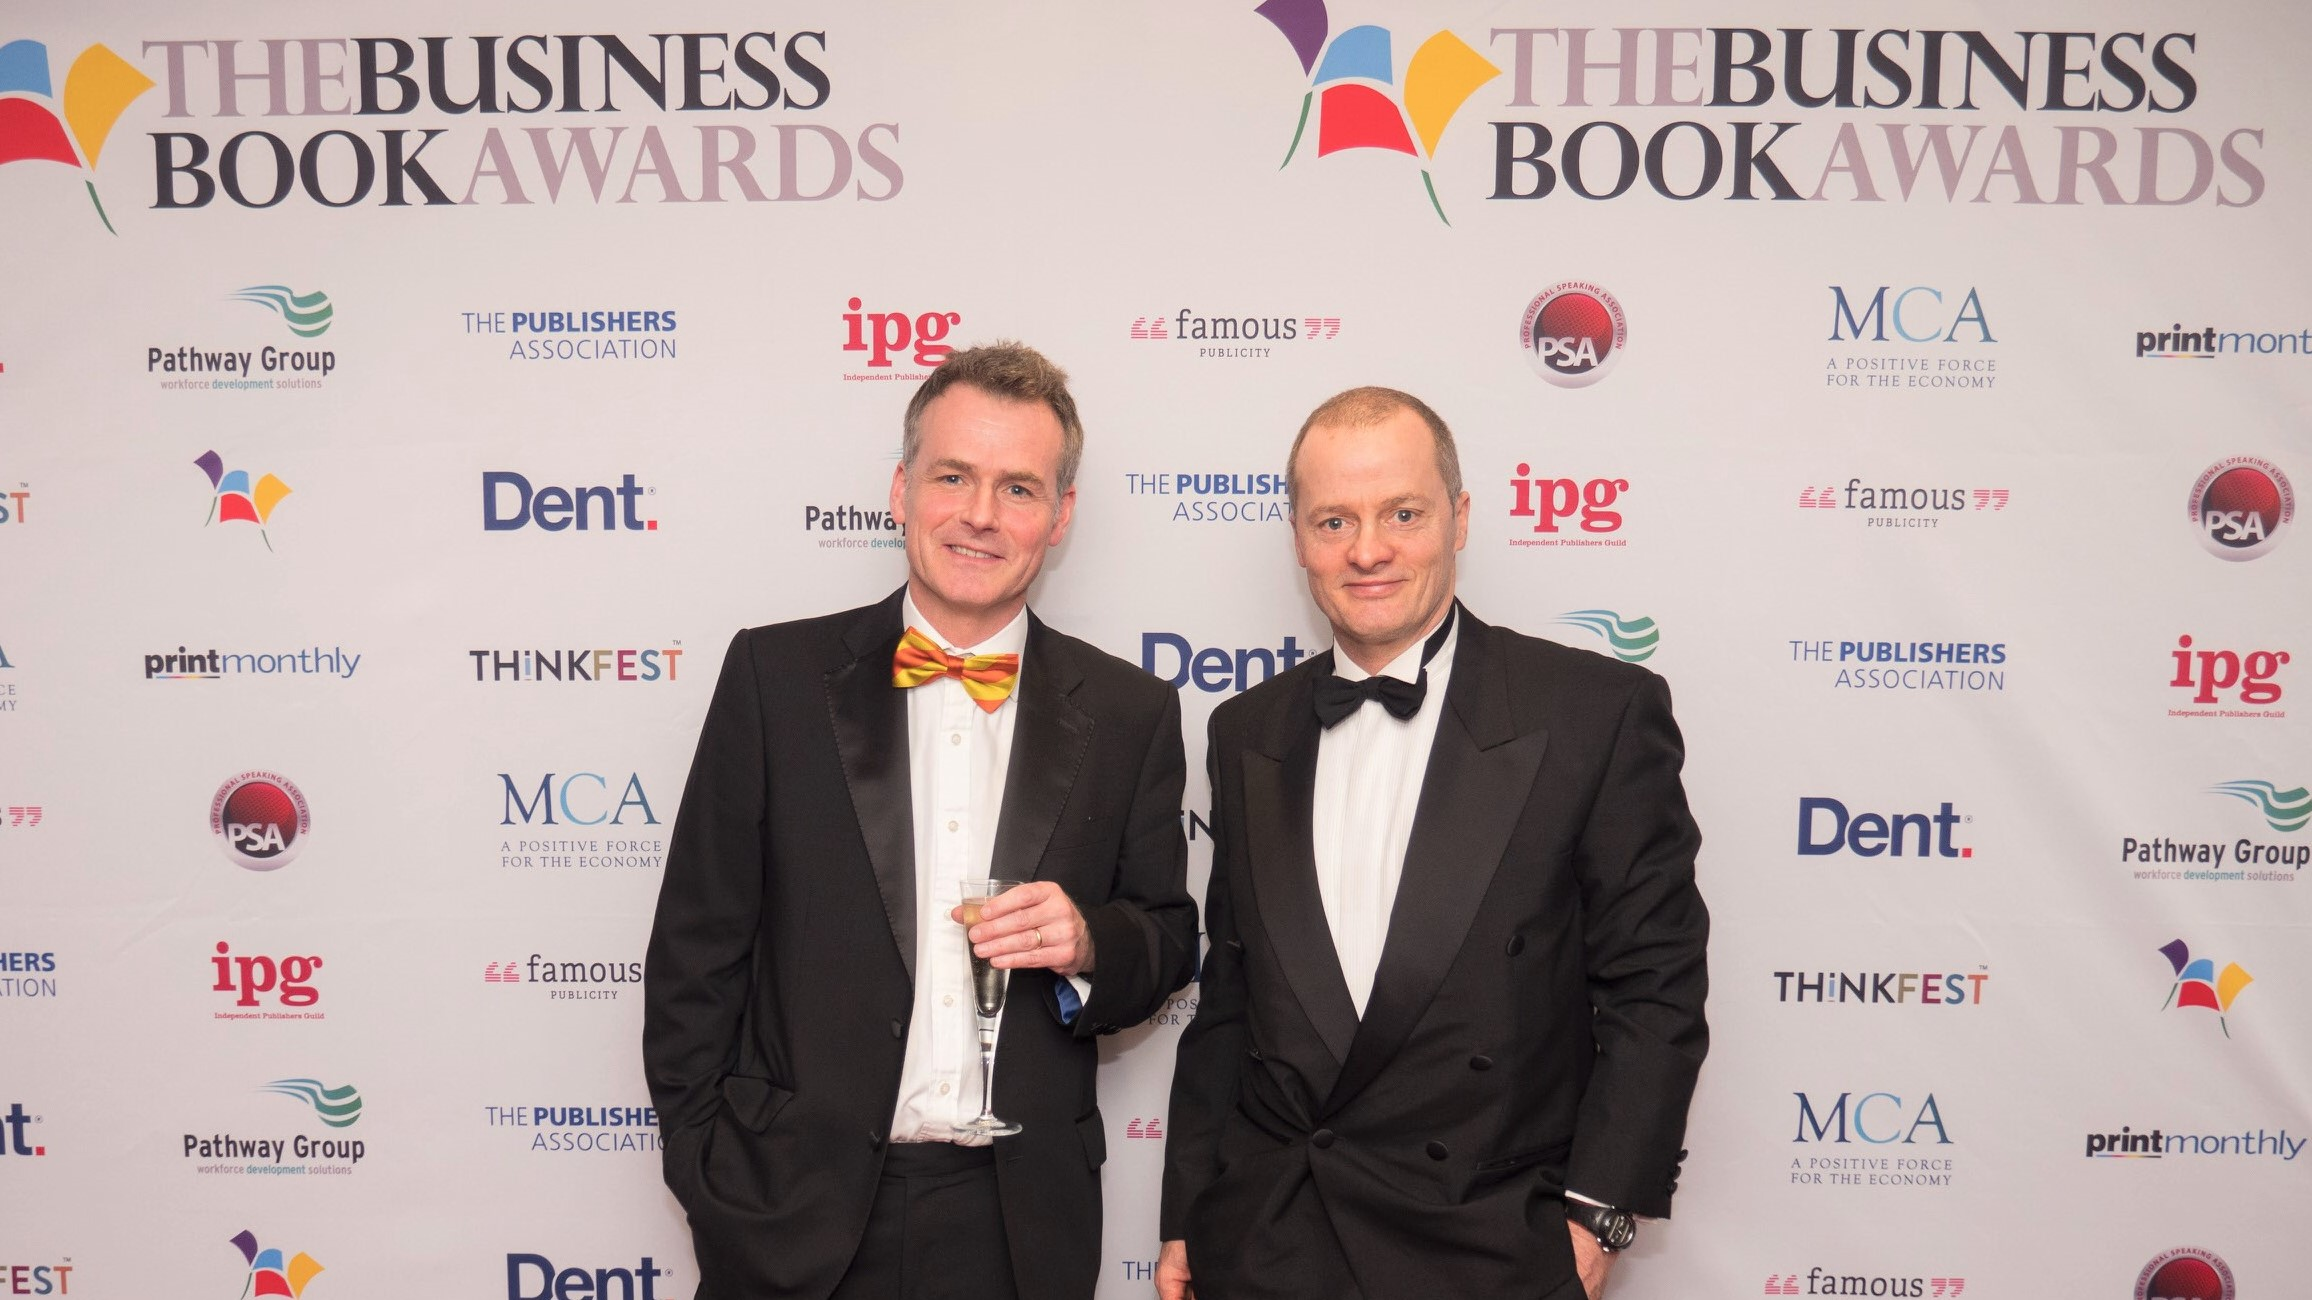 matthew-and-tim-at-business-book-awards-1.jpg